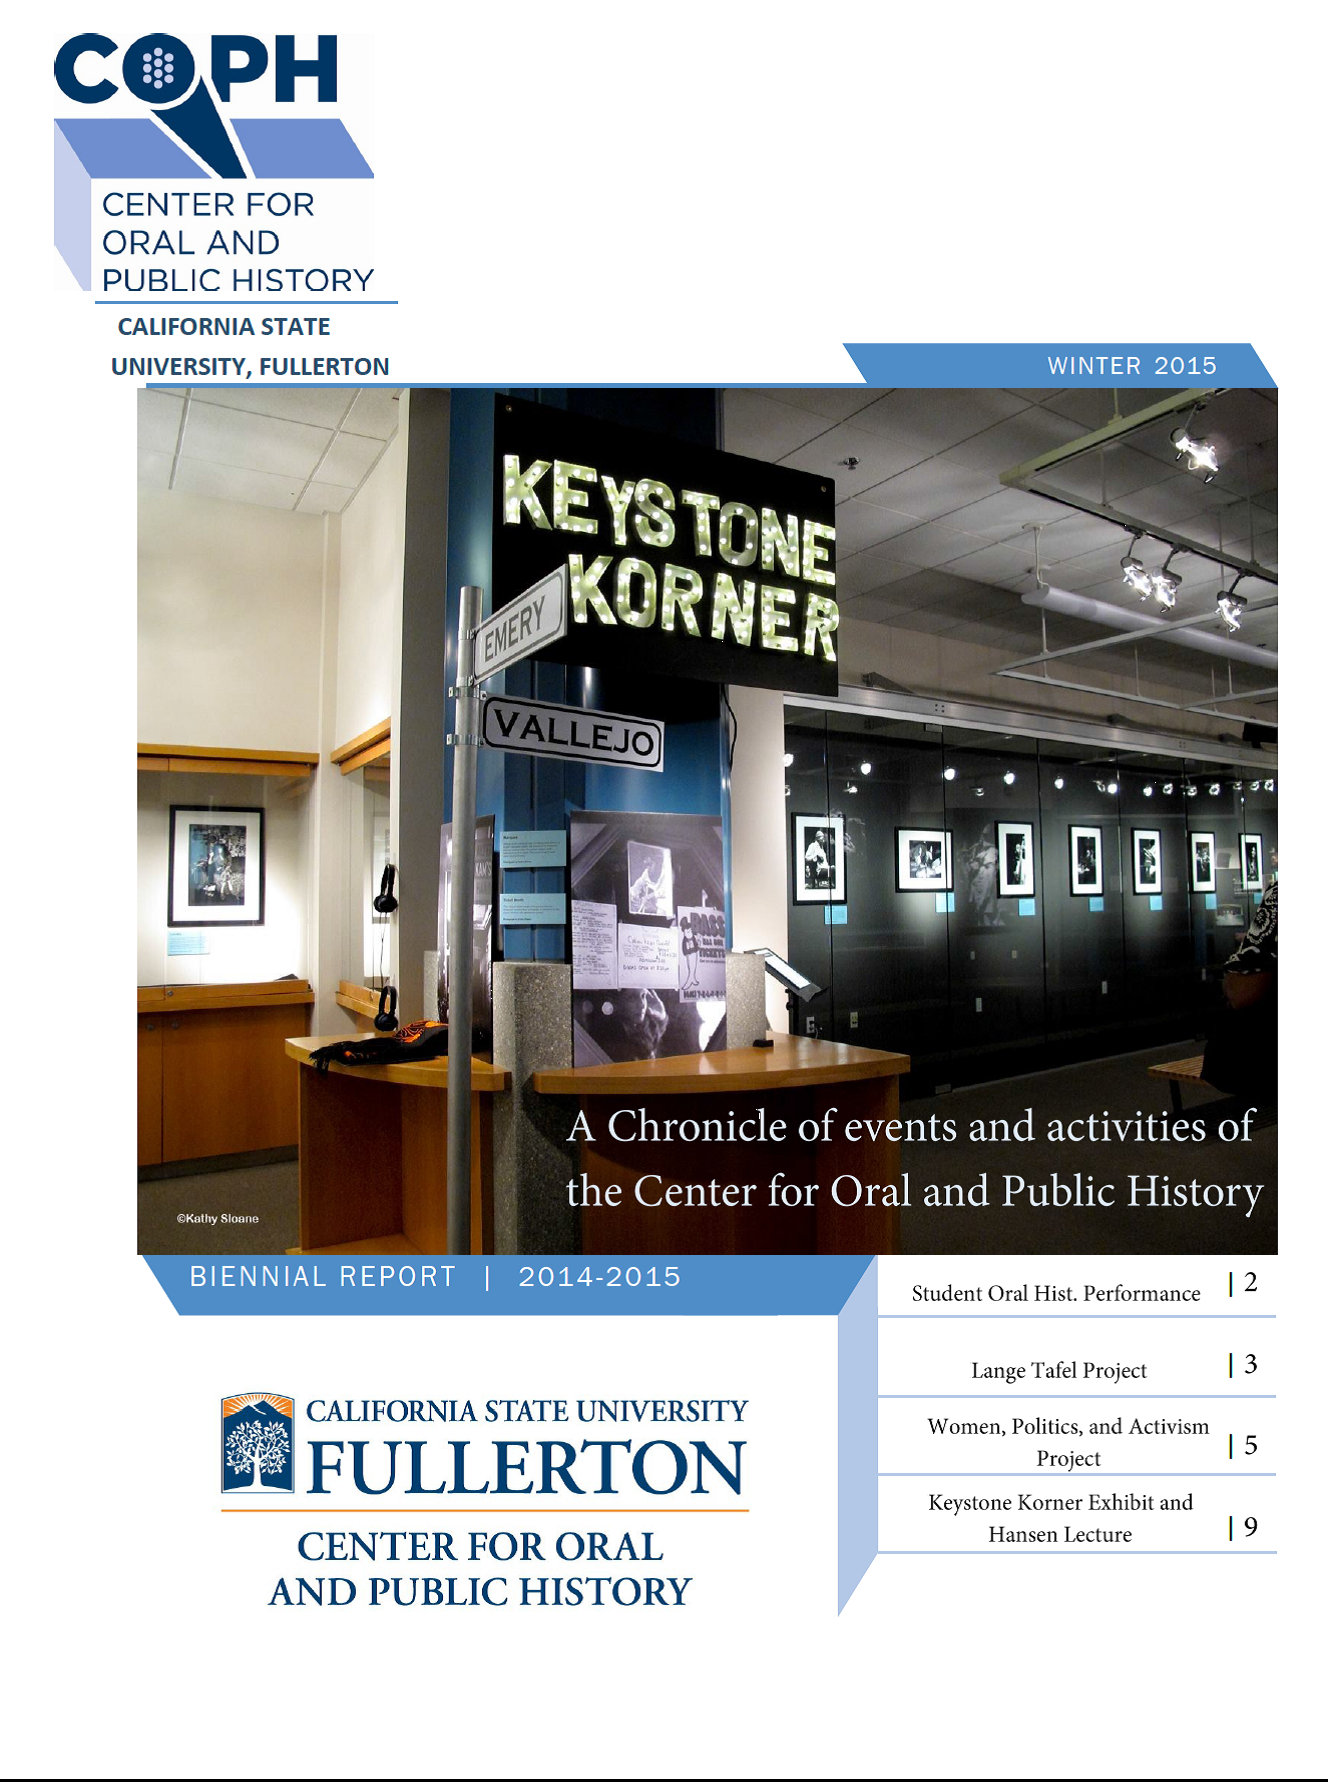 Winter 2015 biennial report cover with keystone korner exhibit featured